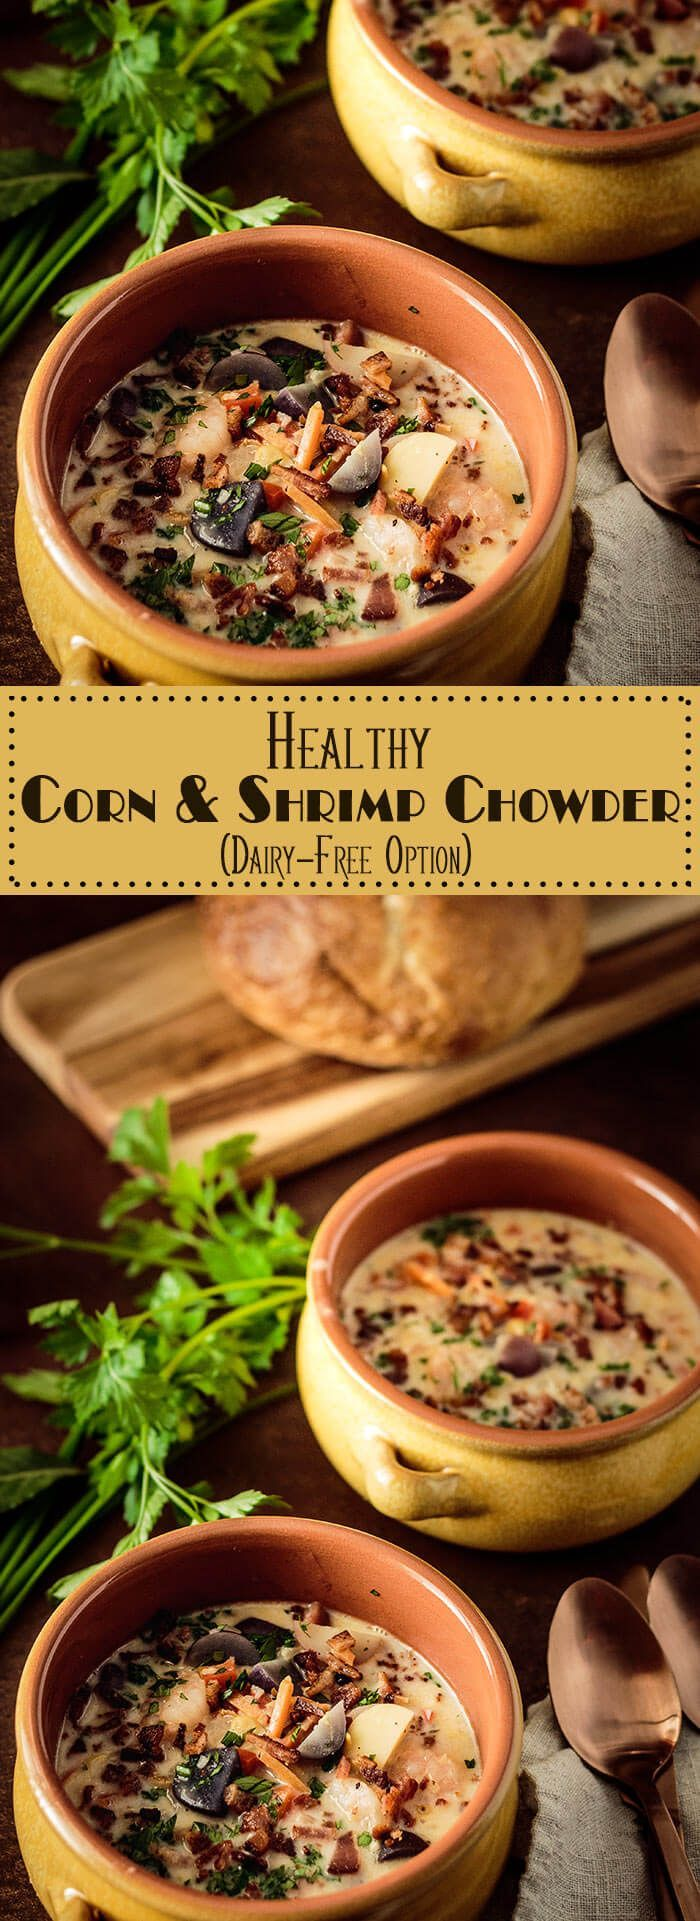 A steaming hot bowl of chowder chases away a cold winter's day! This Healthy Corn and Shrimp Chowder comes together quickly, and is chock full of delicious and healthy ingredients... It's gluten-free, and can be made dairy-free as well! gluten-free / dairy-free/ chowder / shrimp chowder / corn chowder / healthy soups and stews via @TamaraBMS